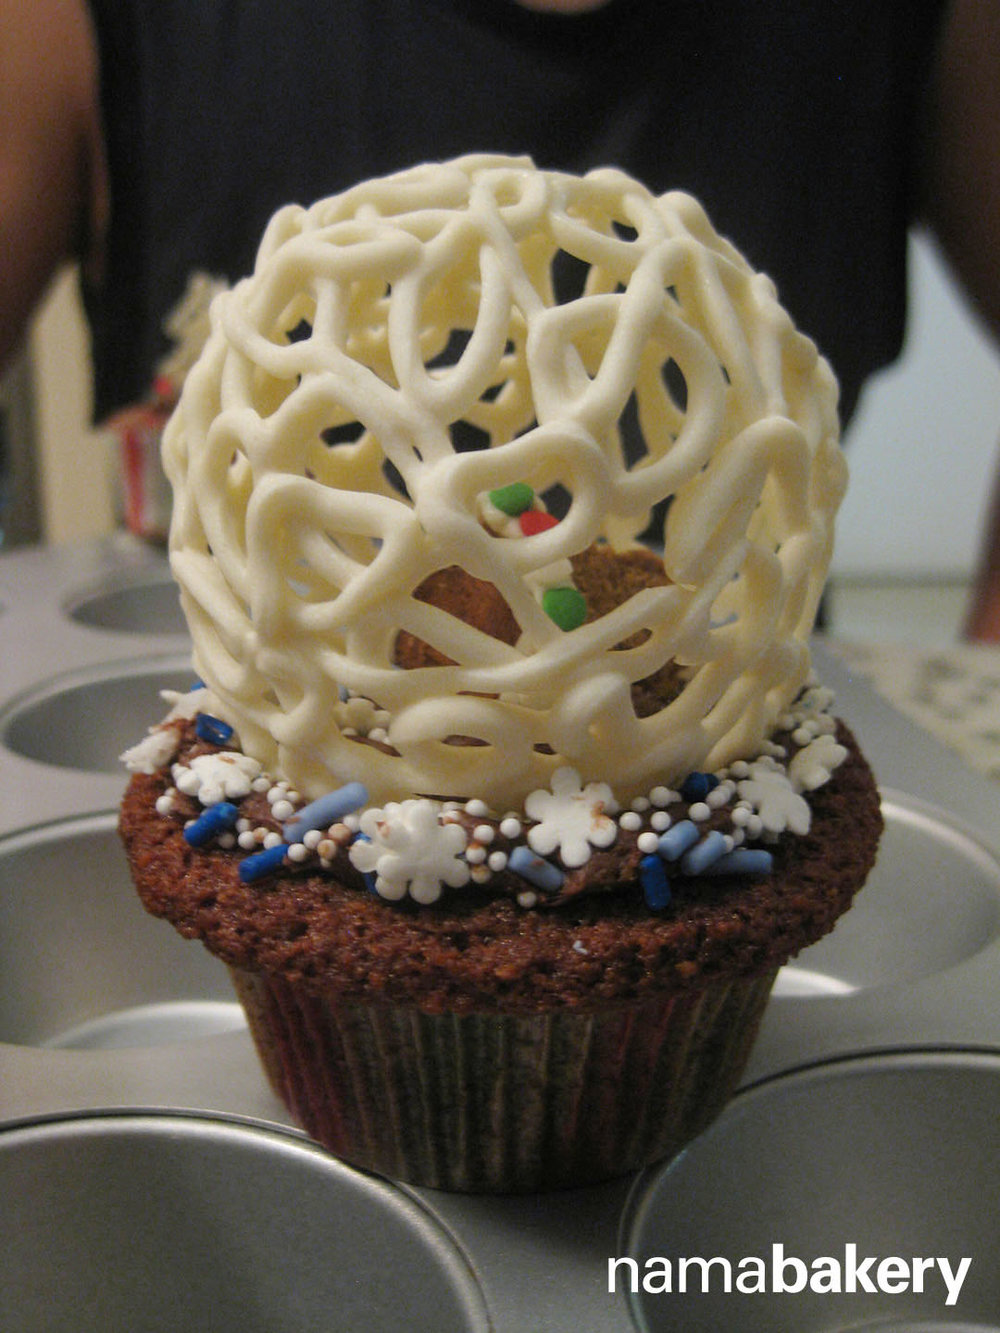 Gingerbread cupcakes with gingerbread houses inside white chocolate globes. Grand Prize Winner of the iHeartRadio Cookoff/Bakeoff in 2013.